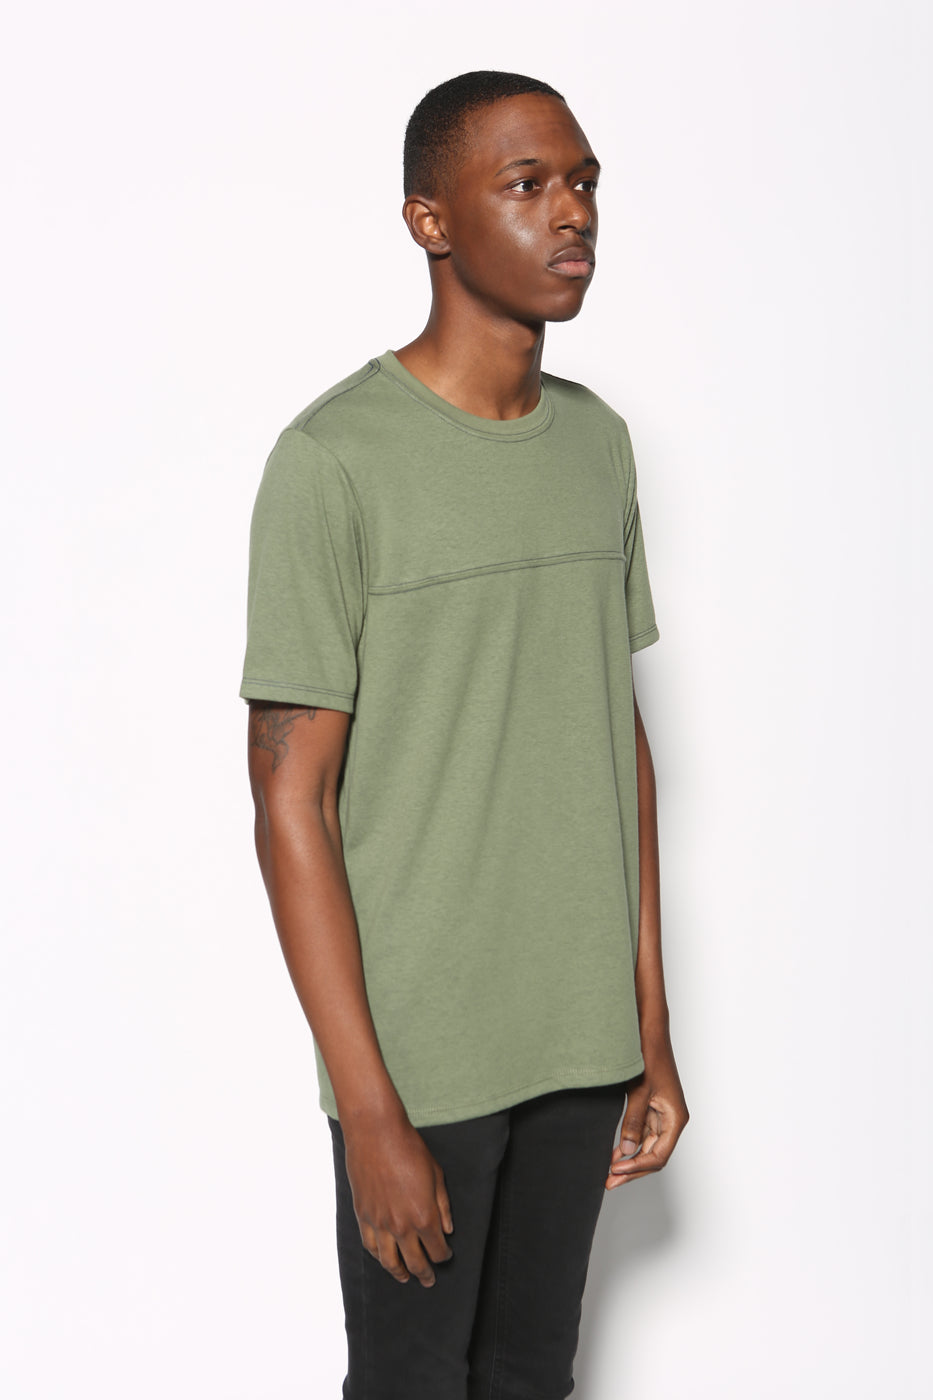 Top - Koya Yoke Block Tee